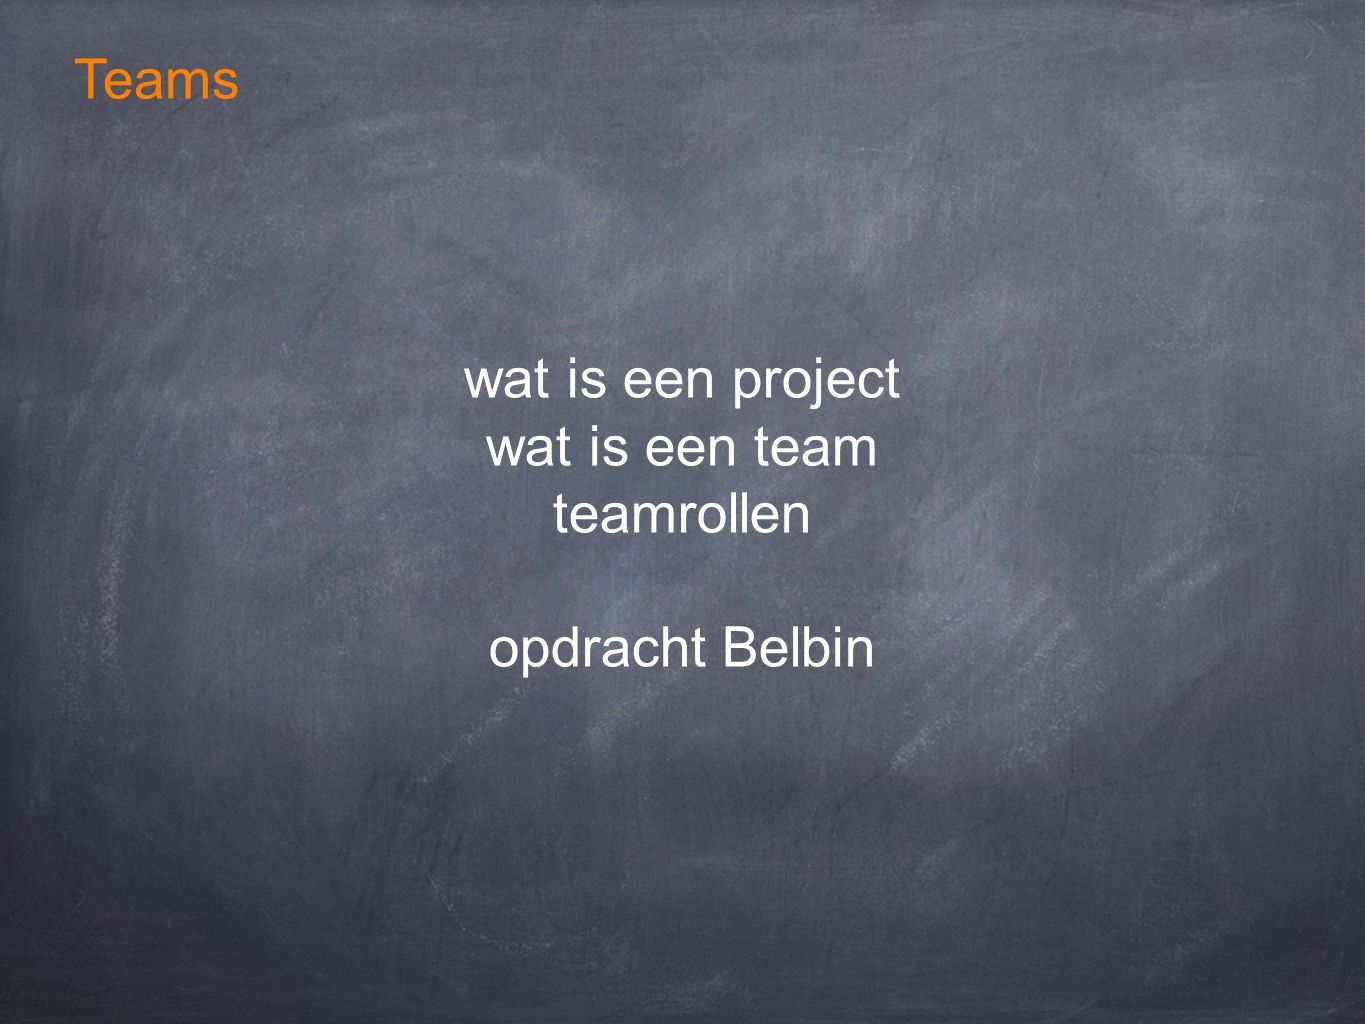 Teams wat is een project wat is een team teamrollen opdracht Belbin